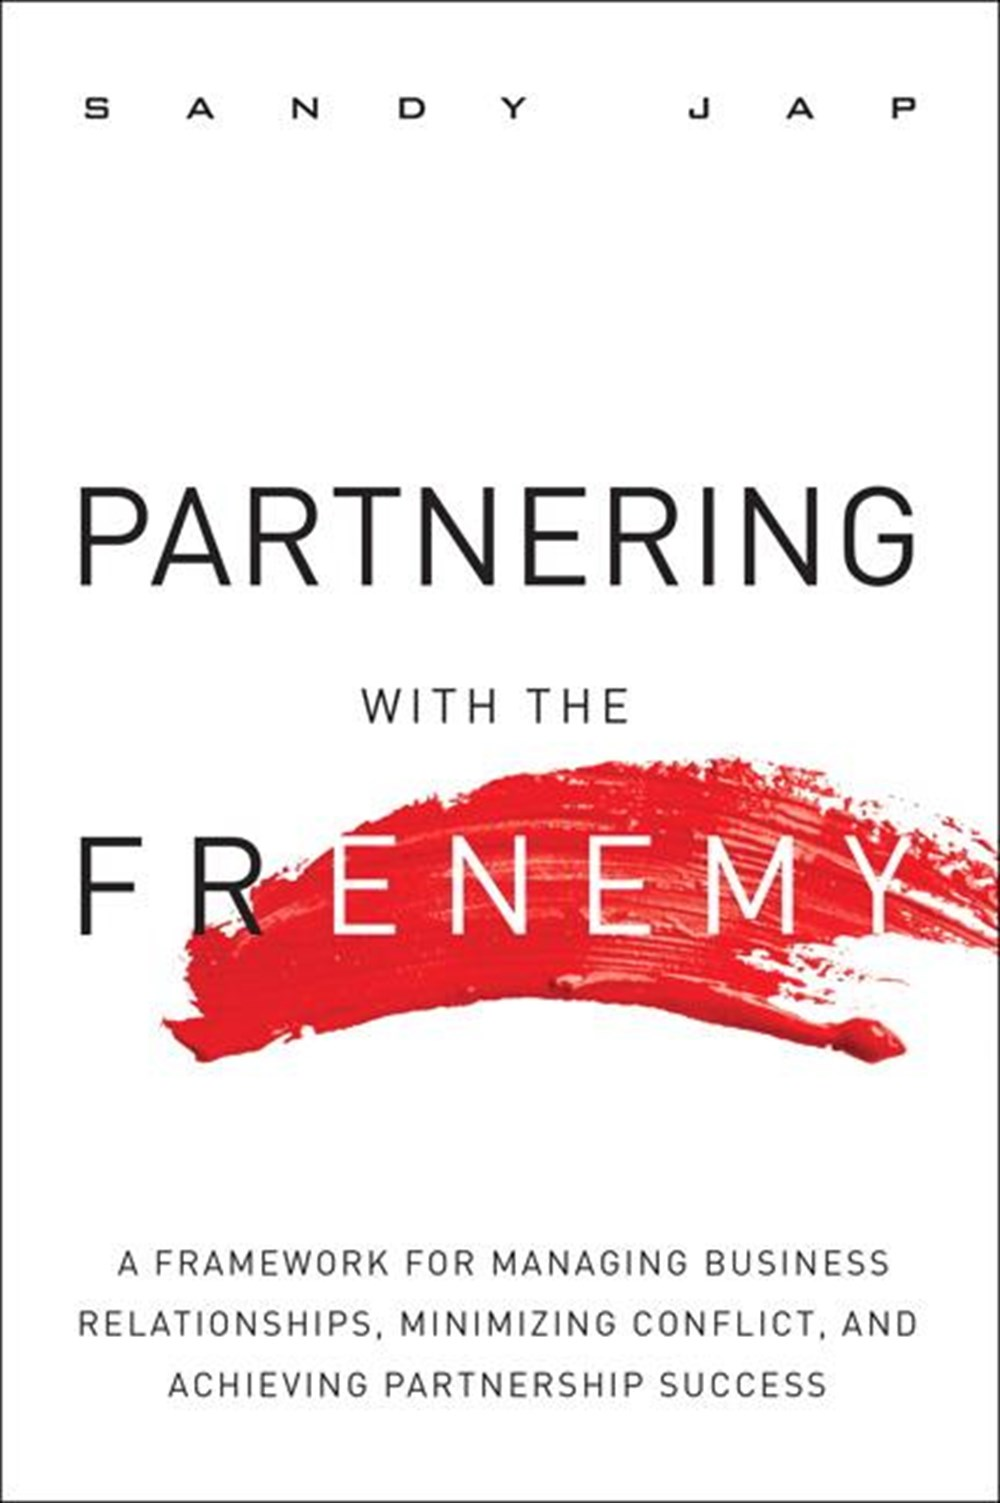 Partnering with the Frenemy A Framework for Managing Business Relationships, Minimizing Conflict, an